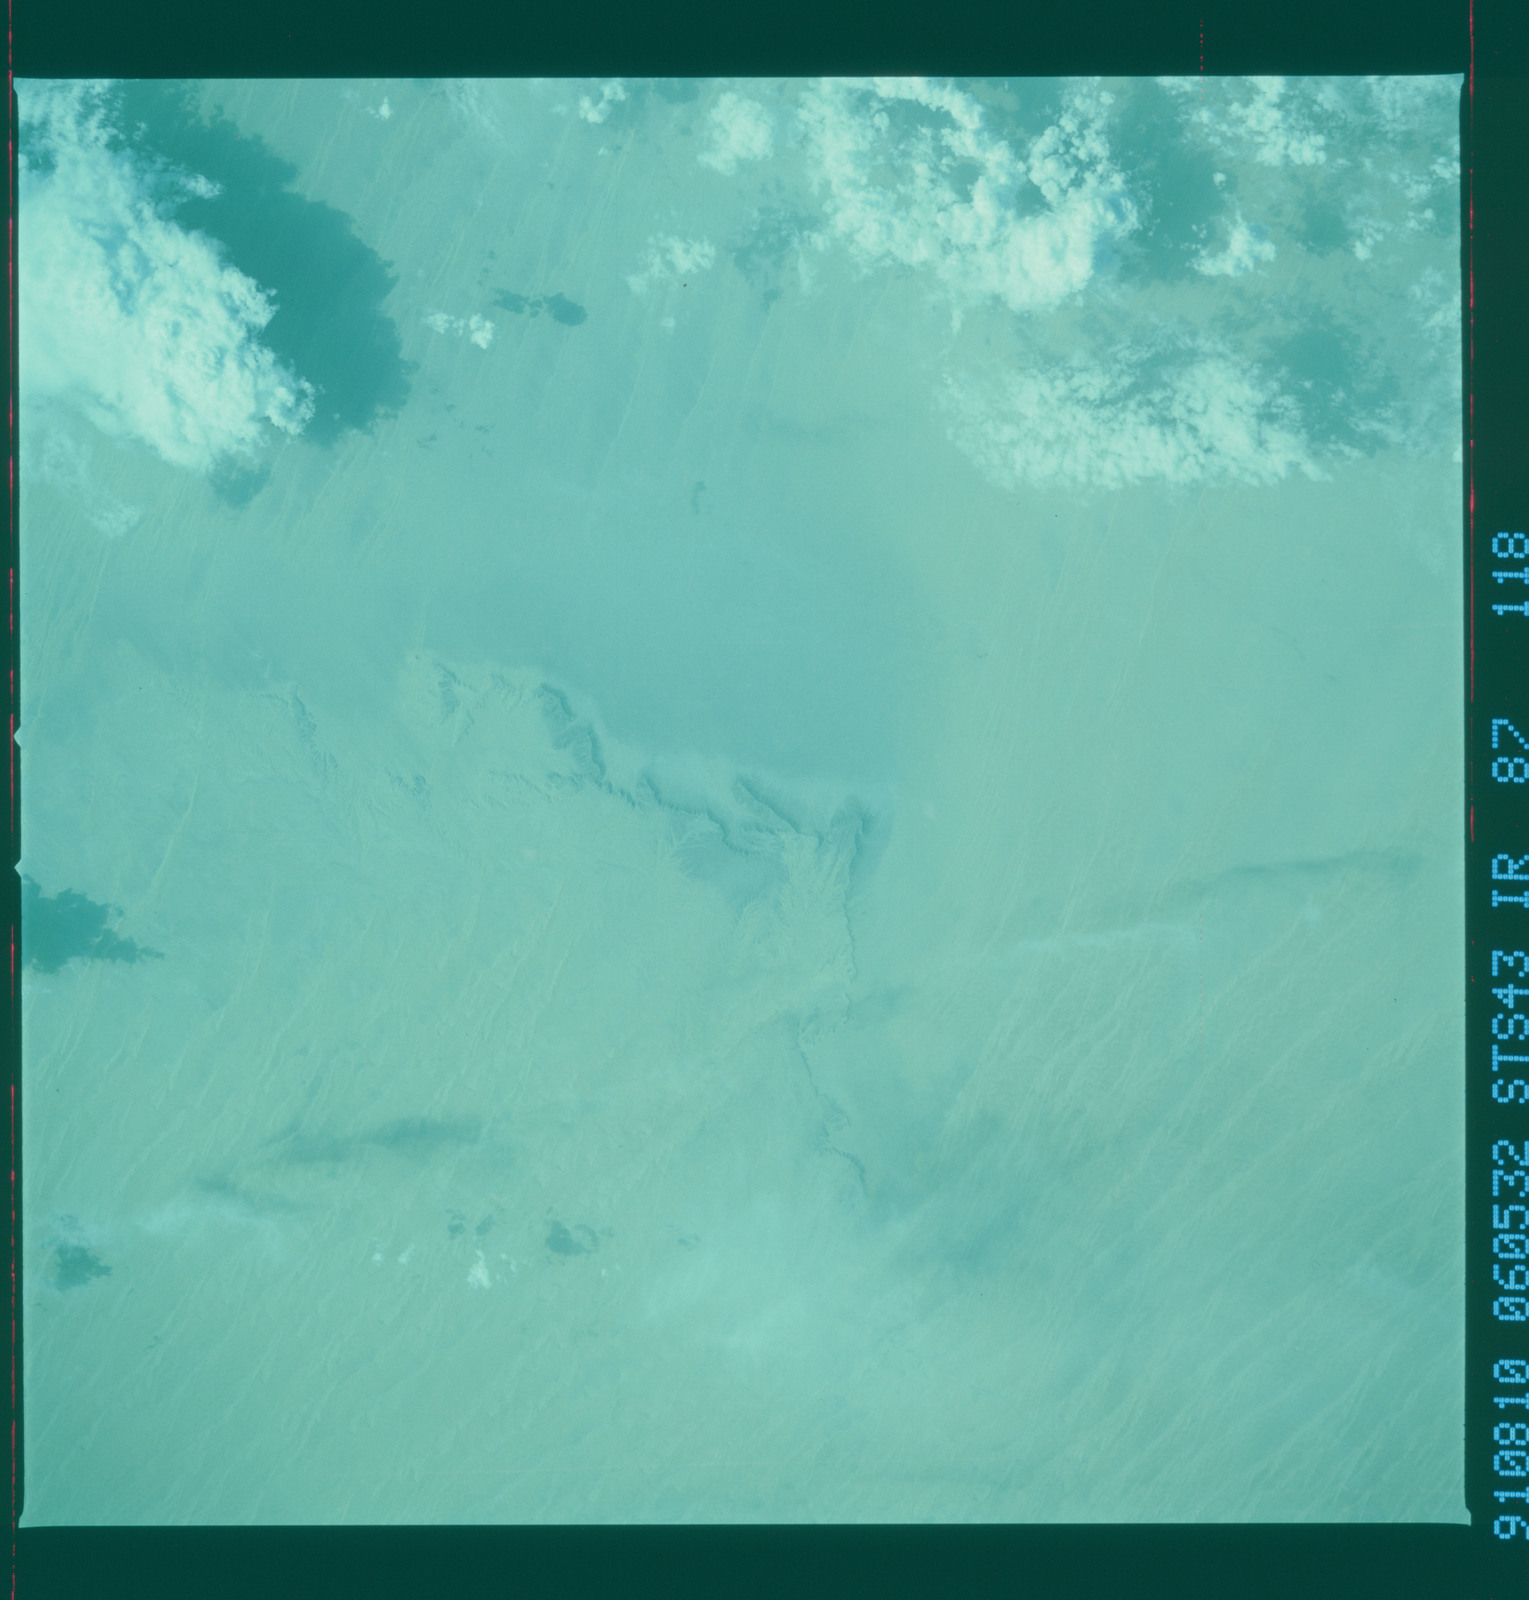 S43-87-118 - STS-043 - STS-43 earth observations